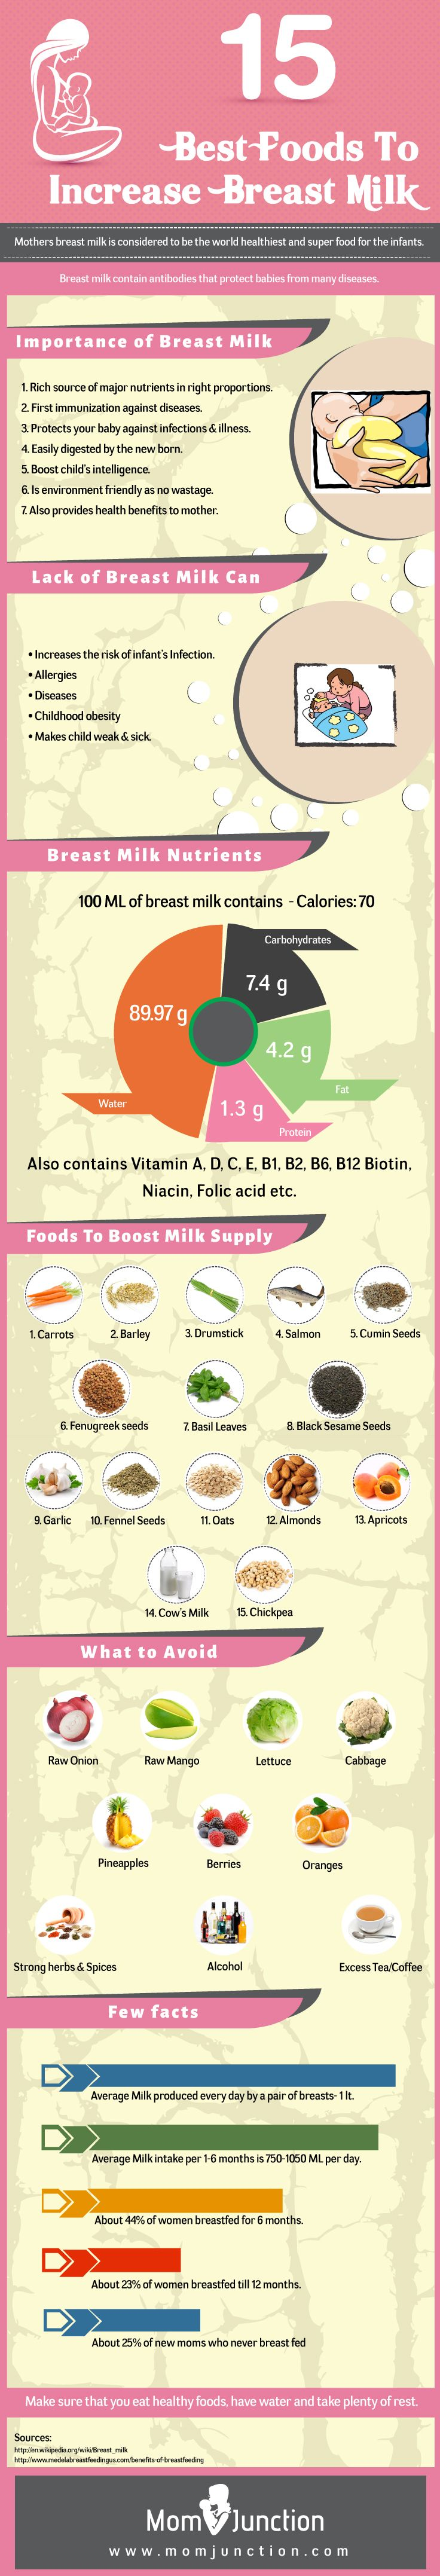 One of the most important questions that nursing moms have is what to eat during the feeding months that will ensure a good supply of milk.Here is a list of the top 25 foods that you must include in your diet to increase breast milk. These are best foods to increase breast milk production & are great in terms of bringing you back to health, as well as aid in milk production.